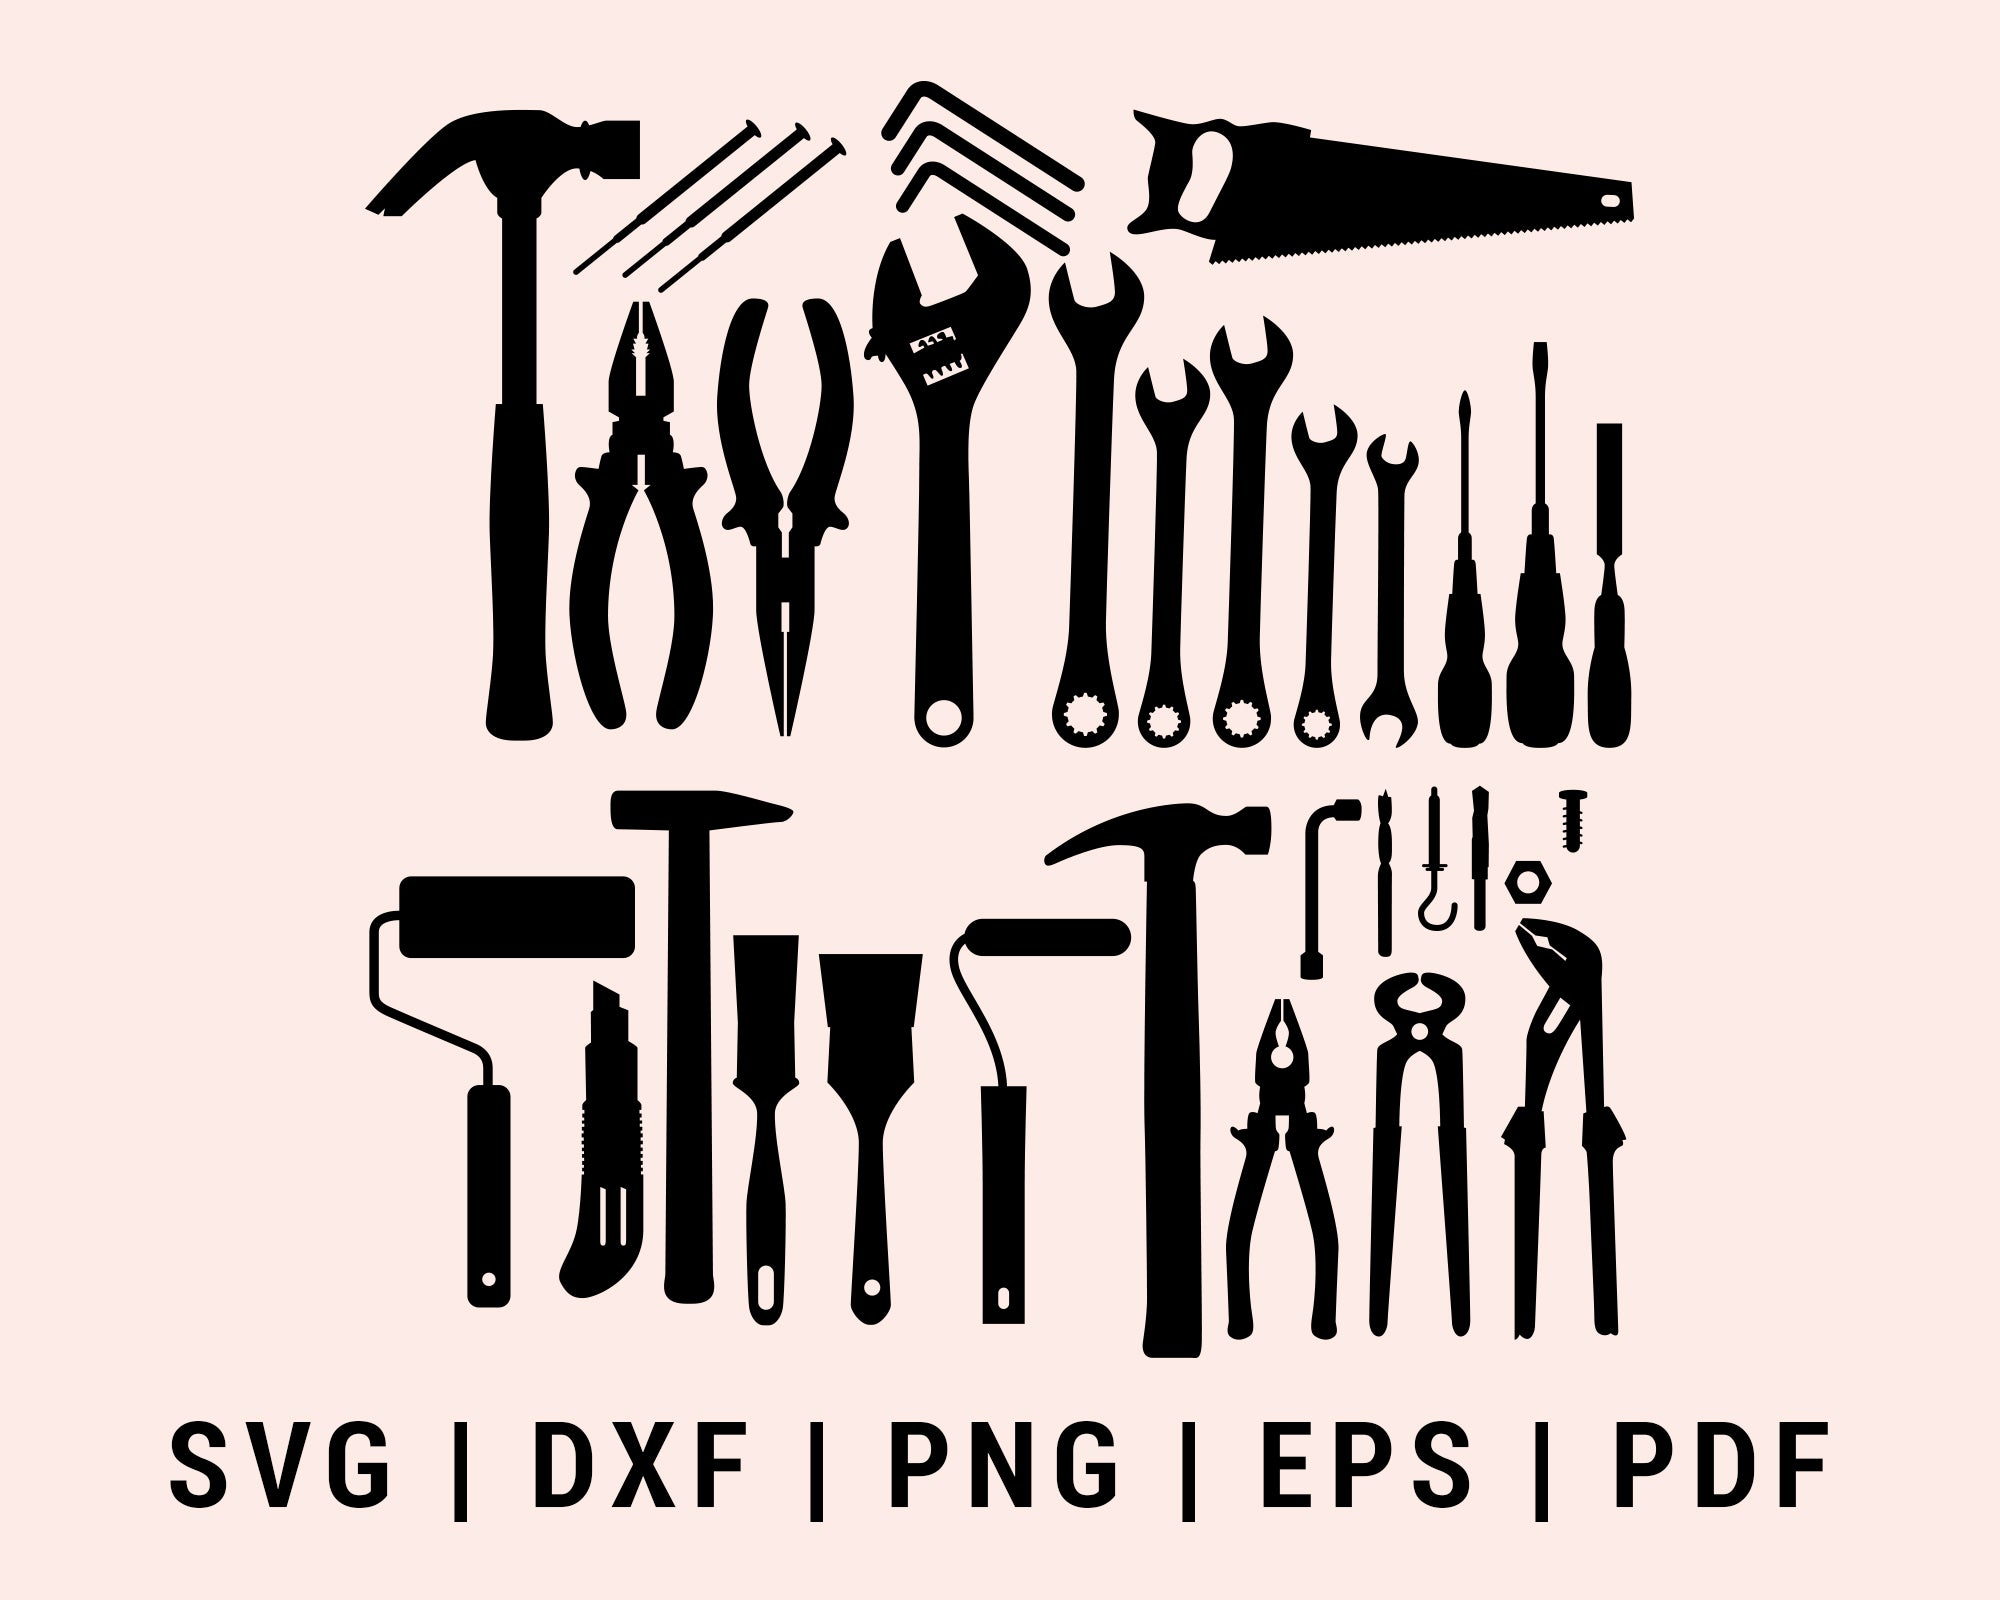 Tools Collection Cut File For Cricut Bundle SVG, DXF, PNG, EPS, PDF Silhouette Printable Files